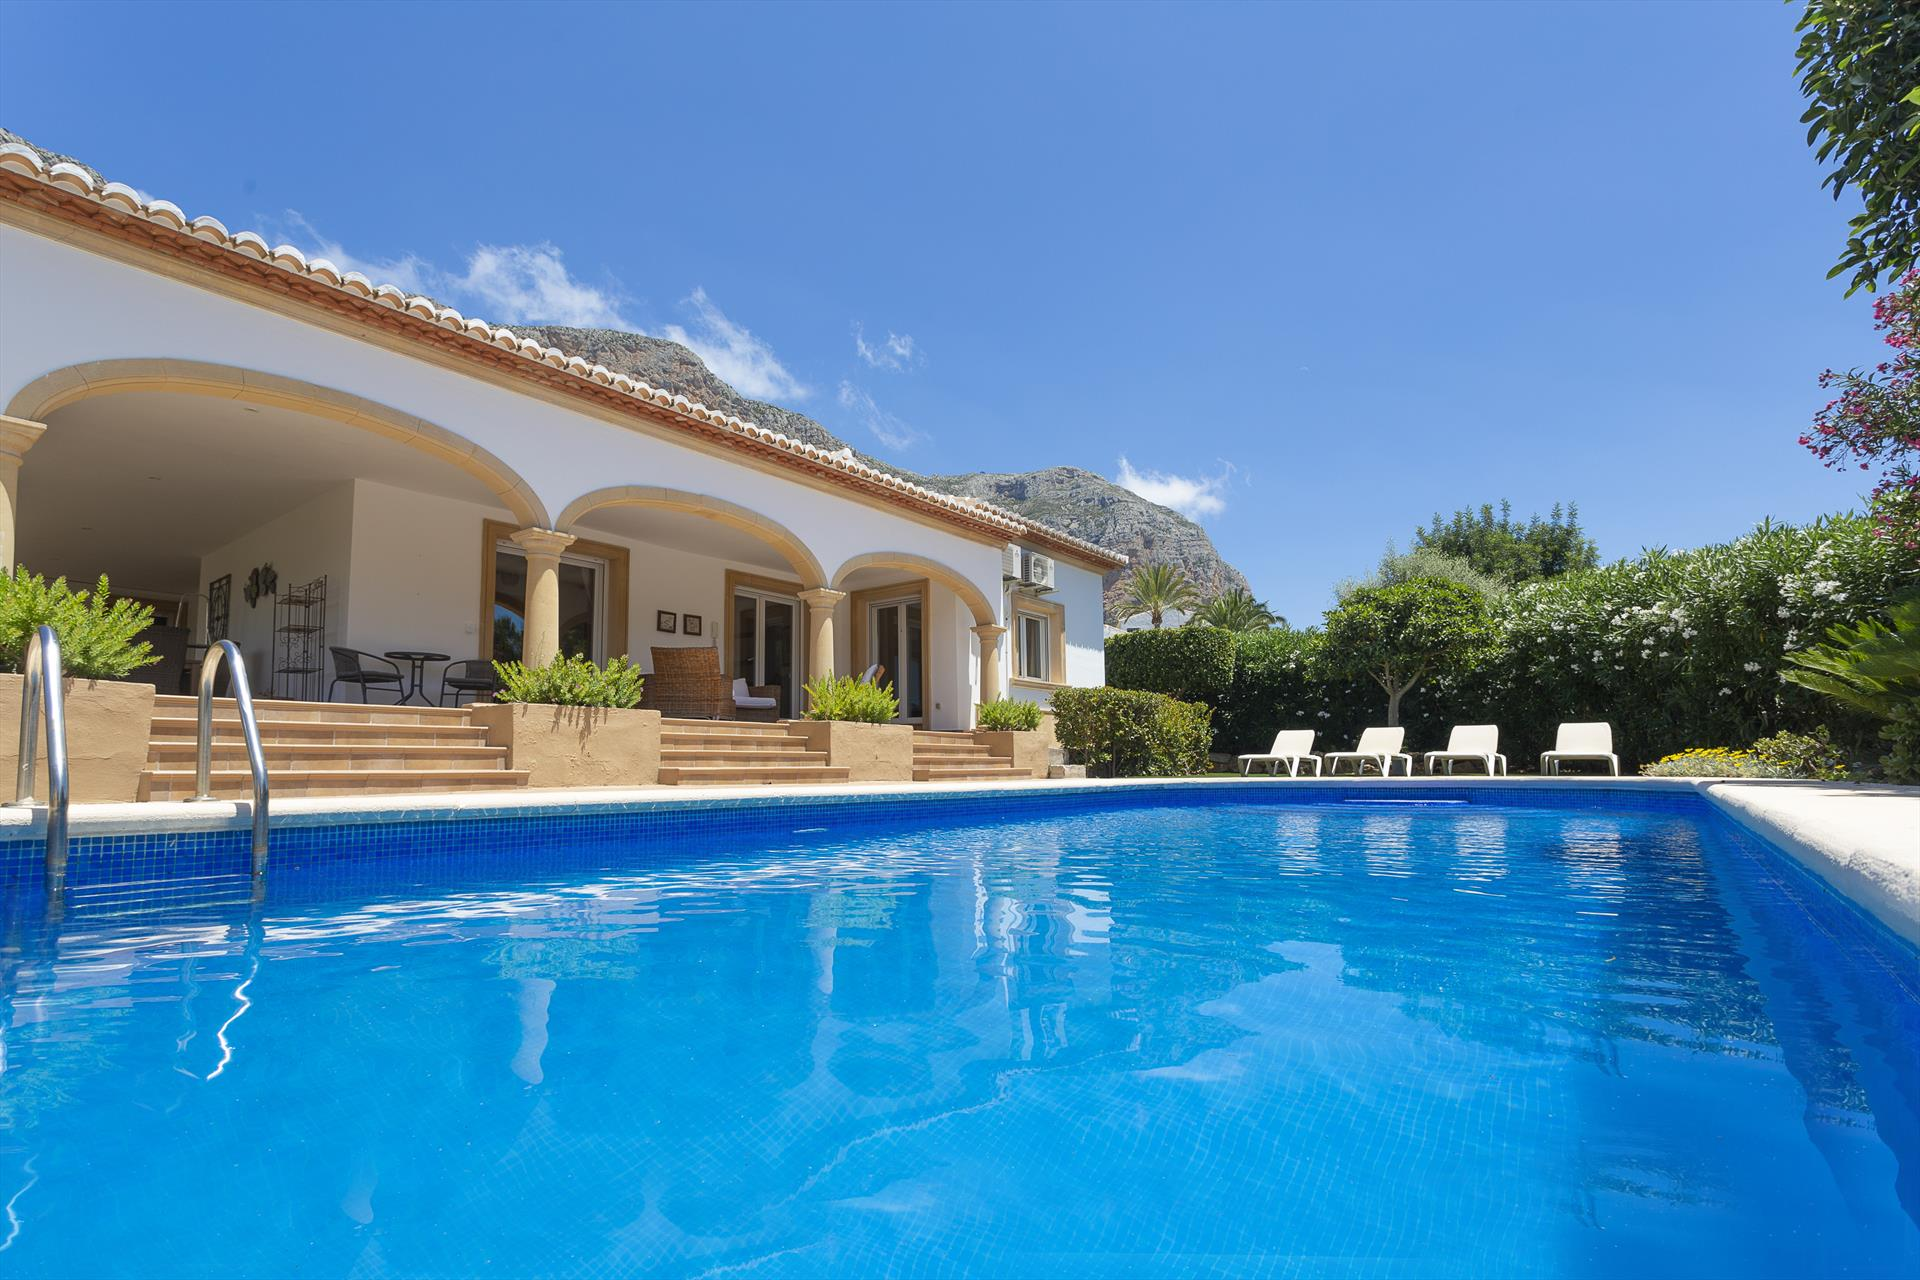 Casa Dory,Lovely holiday villa for 10 people in Javea with private pool and beautiful views of the Montgo mountain and the valley.This.....